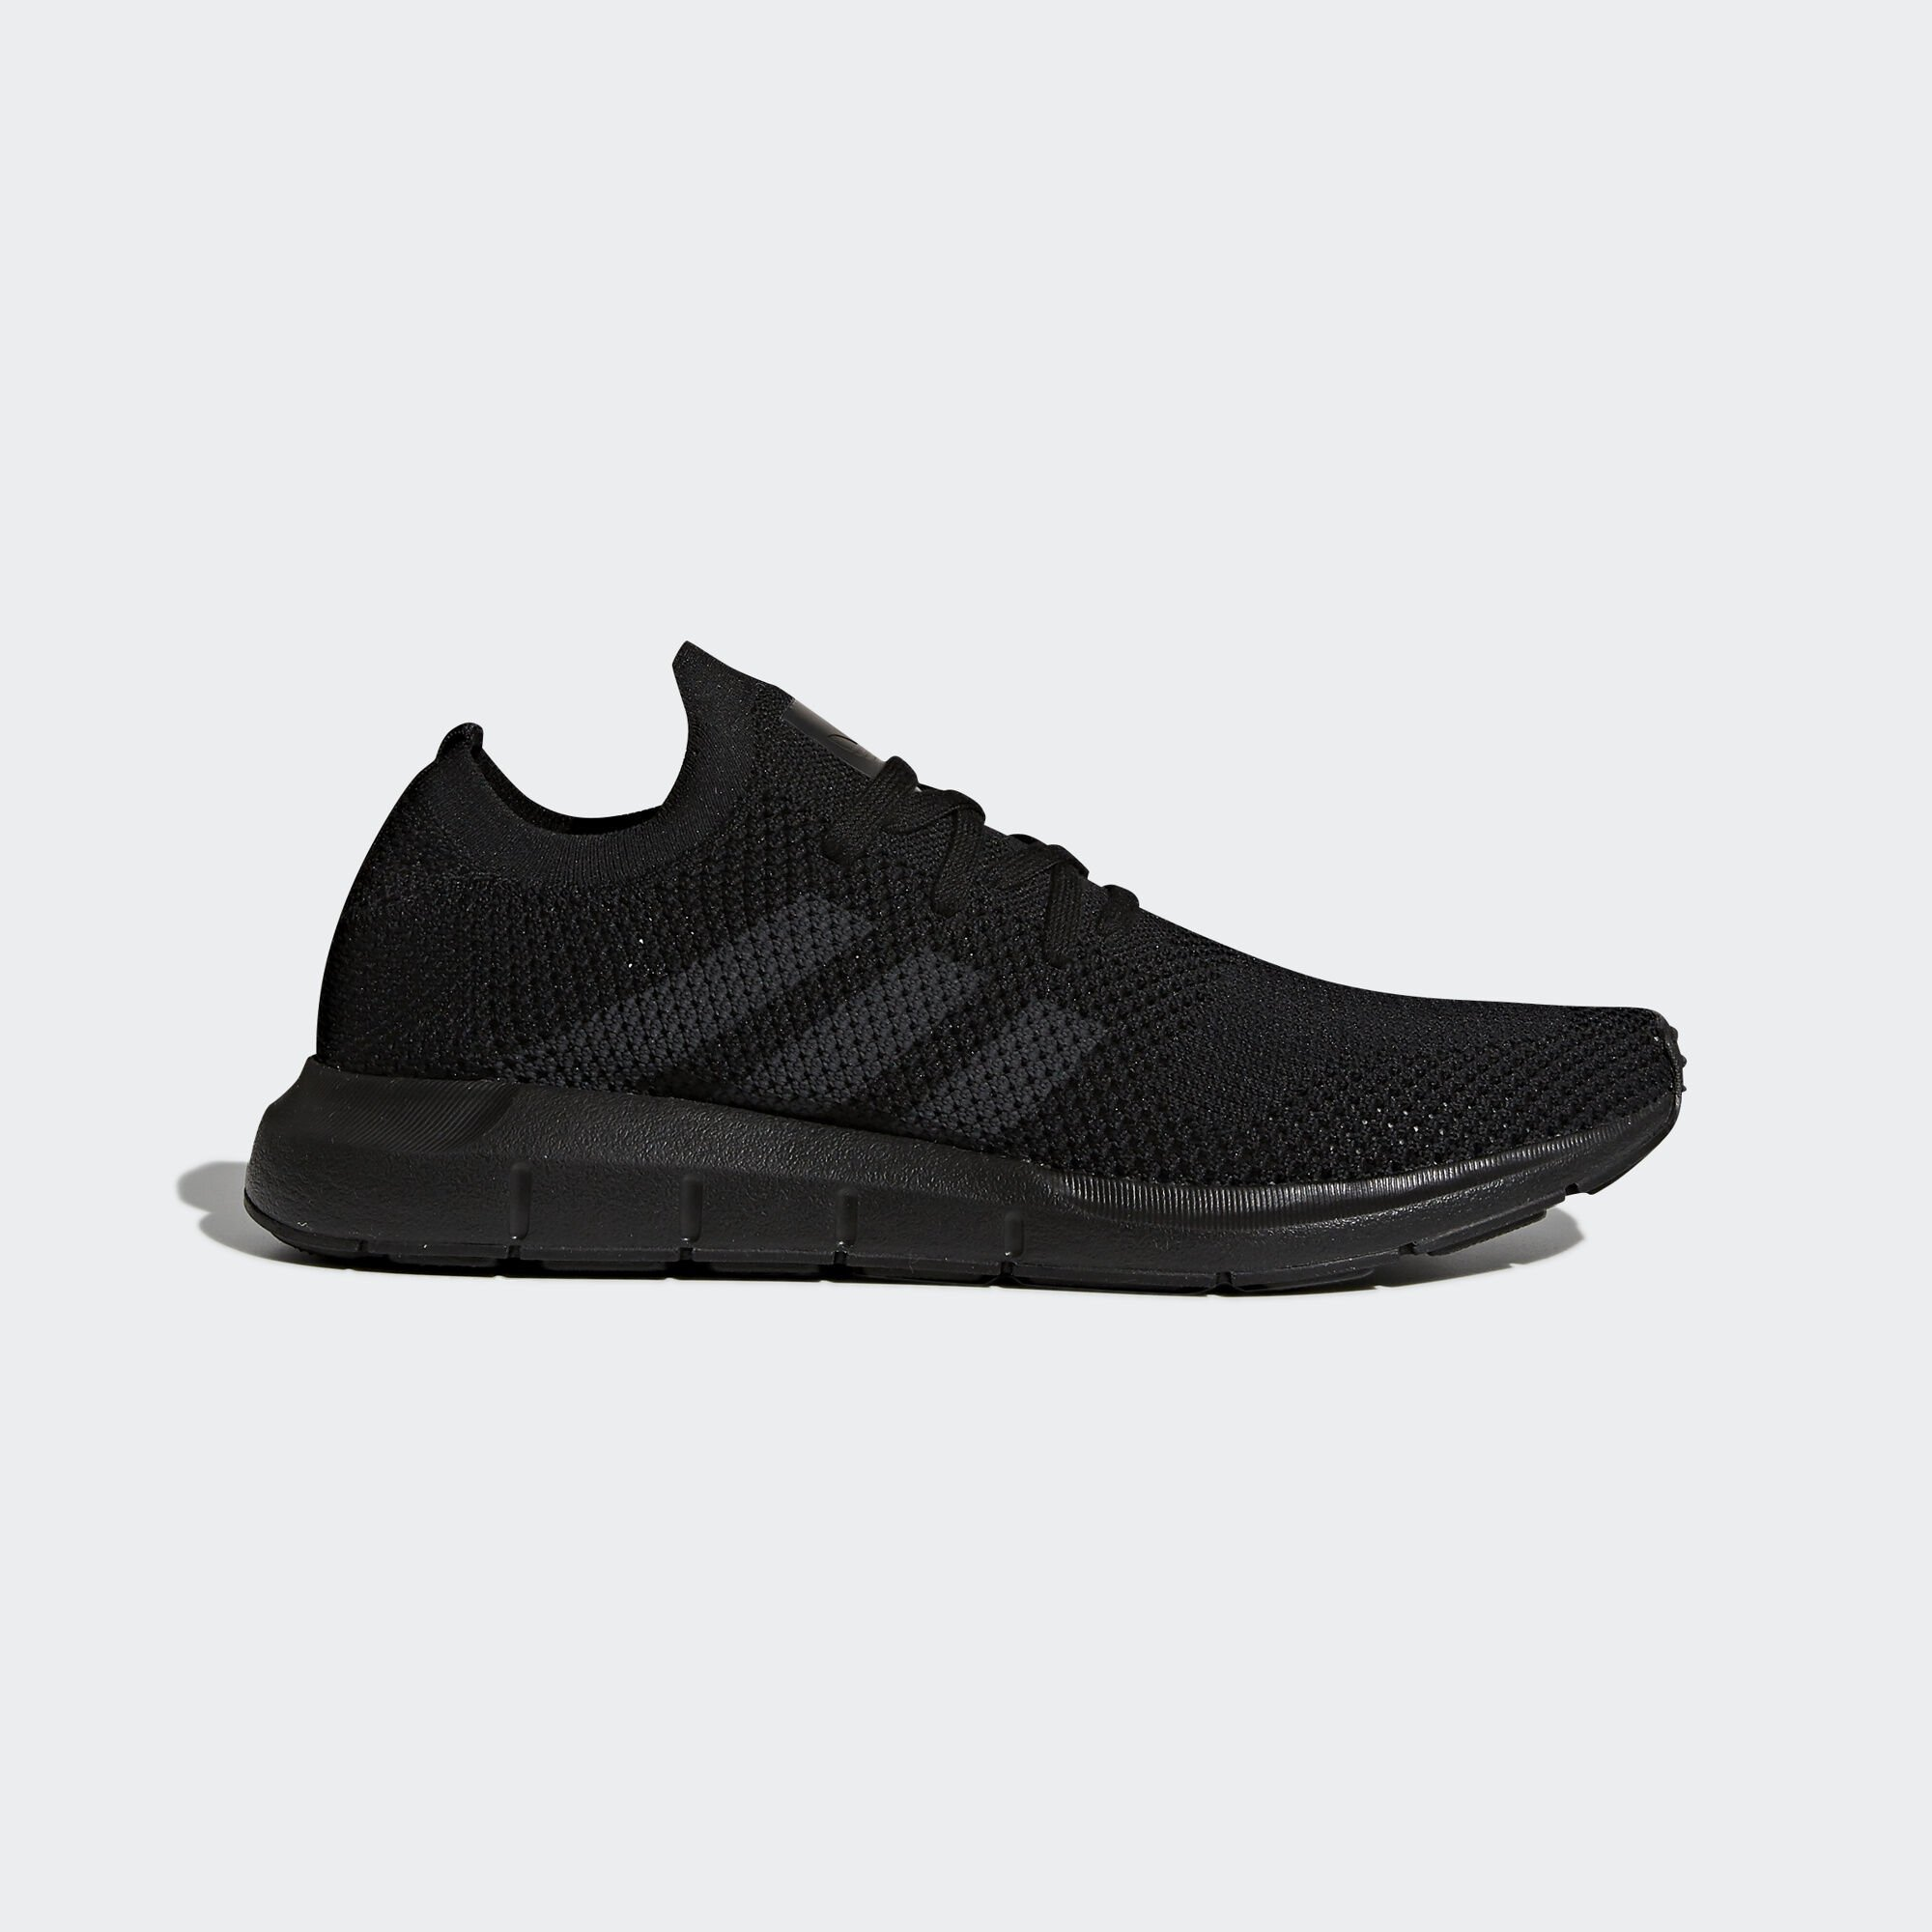 adidas Swift Run Primeknit Triple Black CQ2893